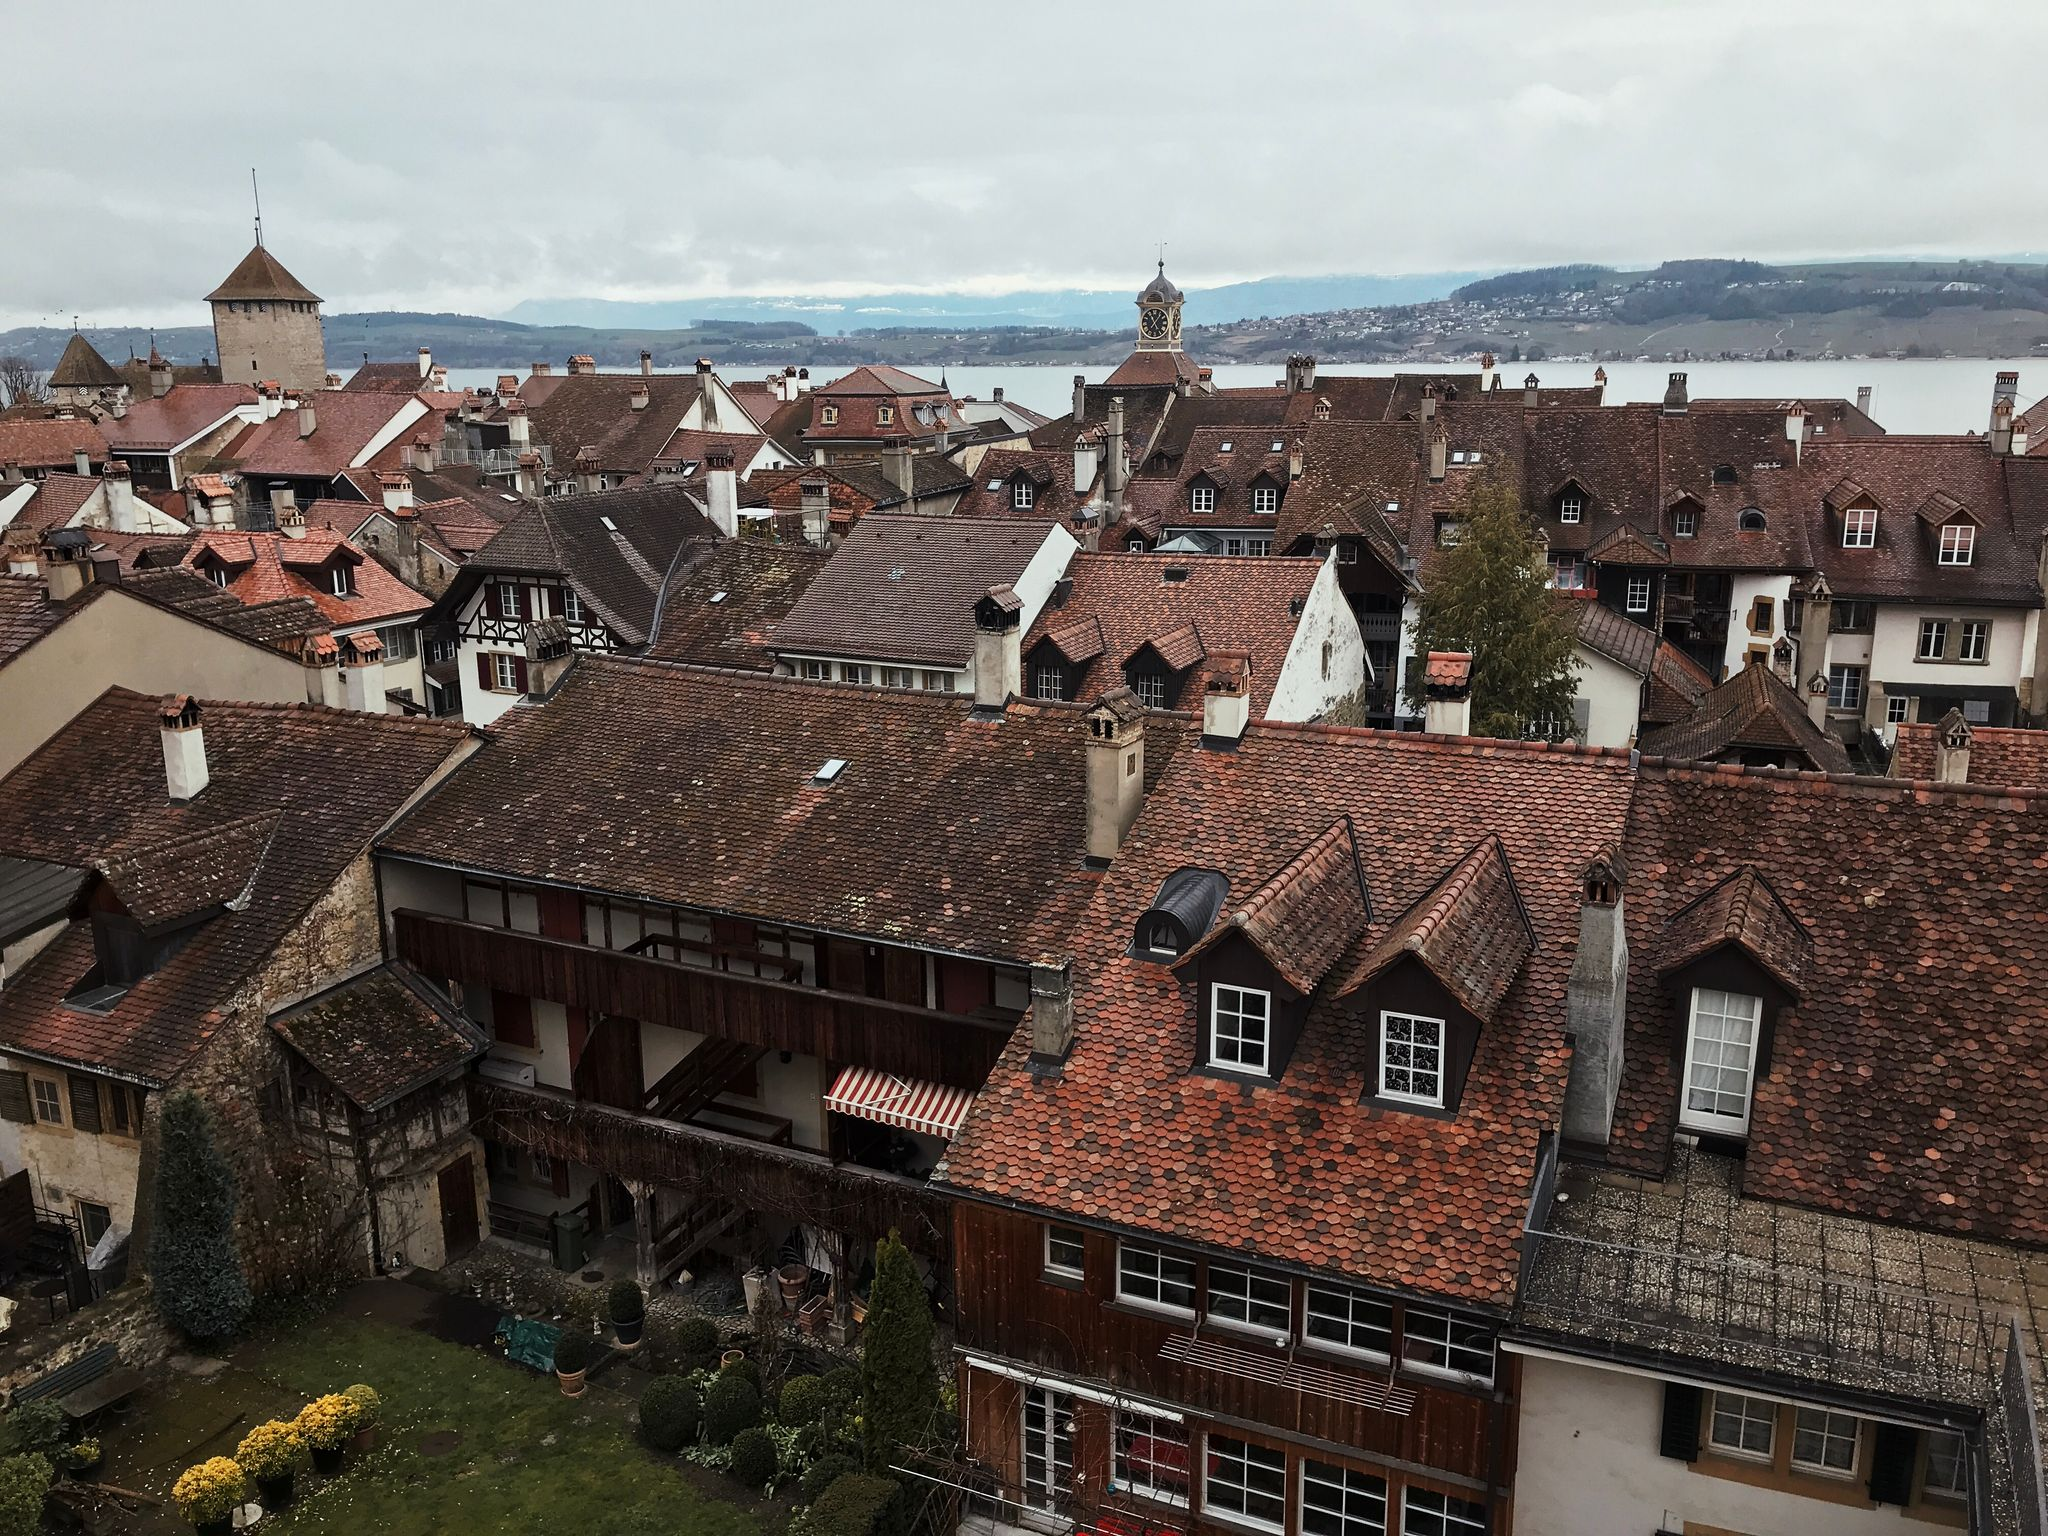 A view looking out over the roofs lots of medieval houses.